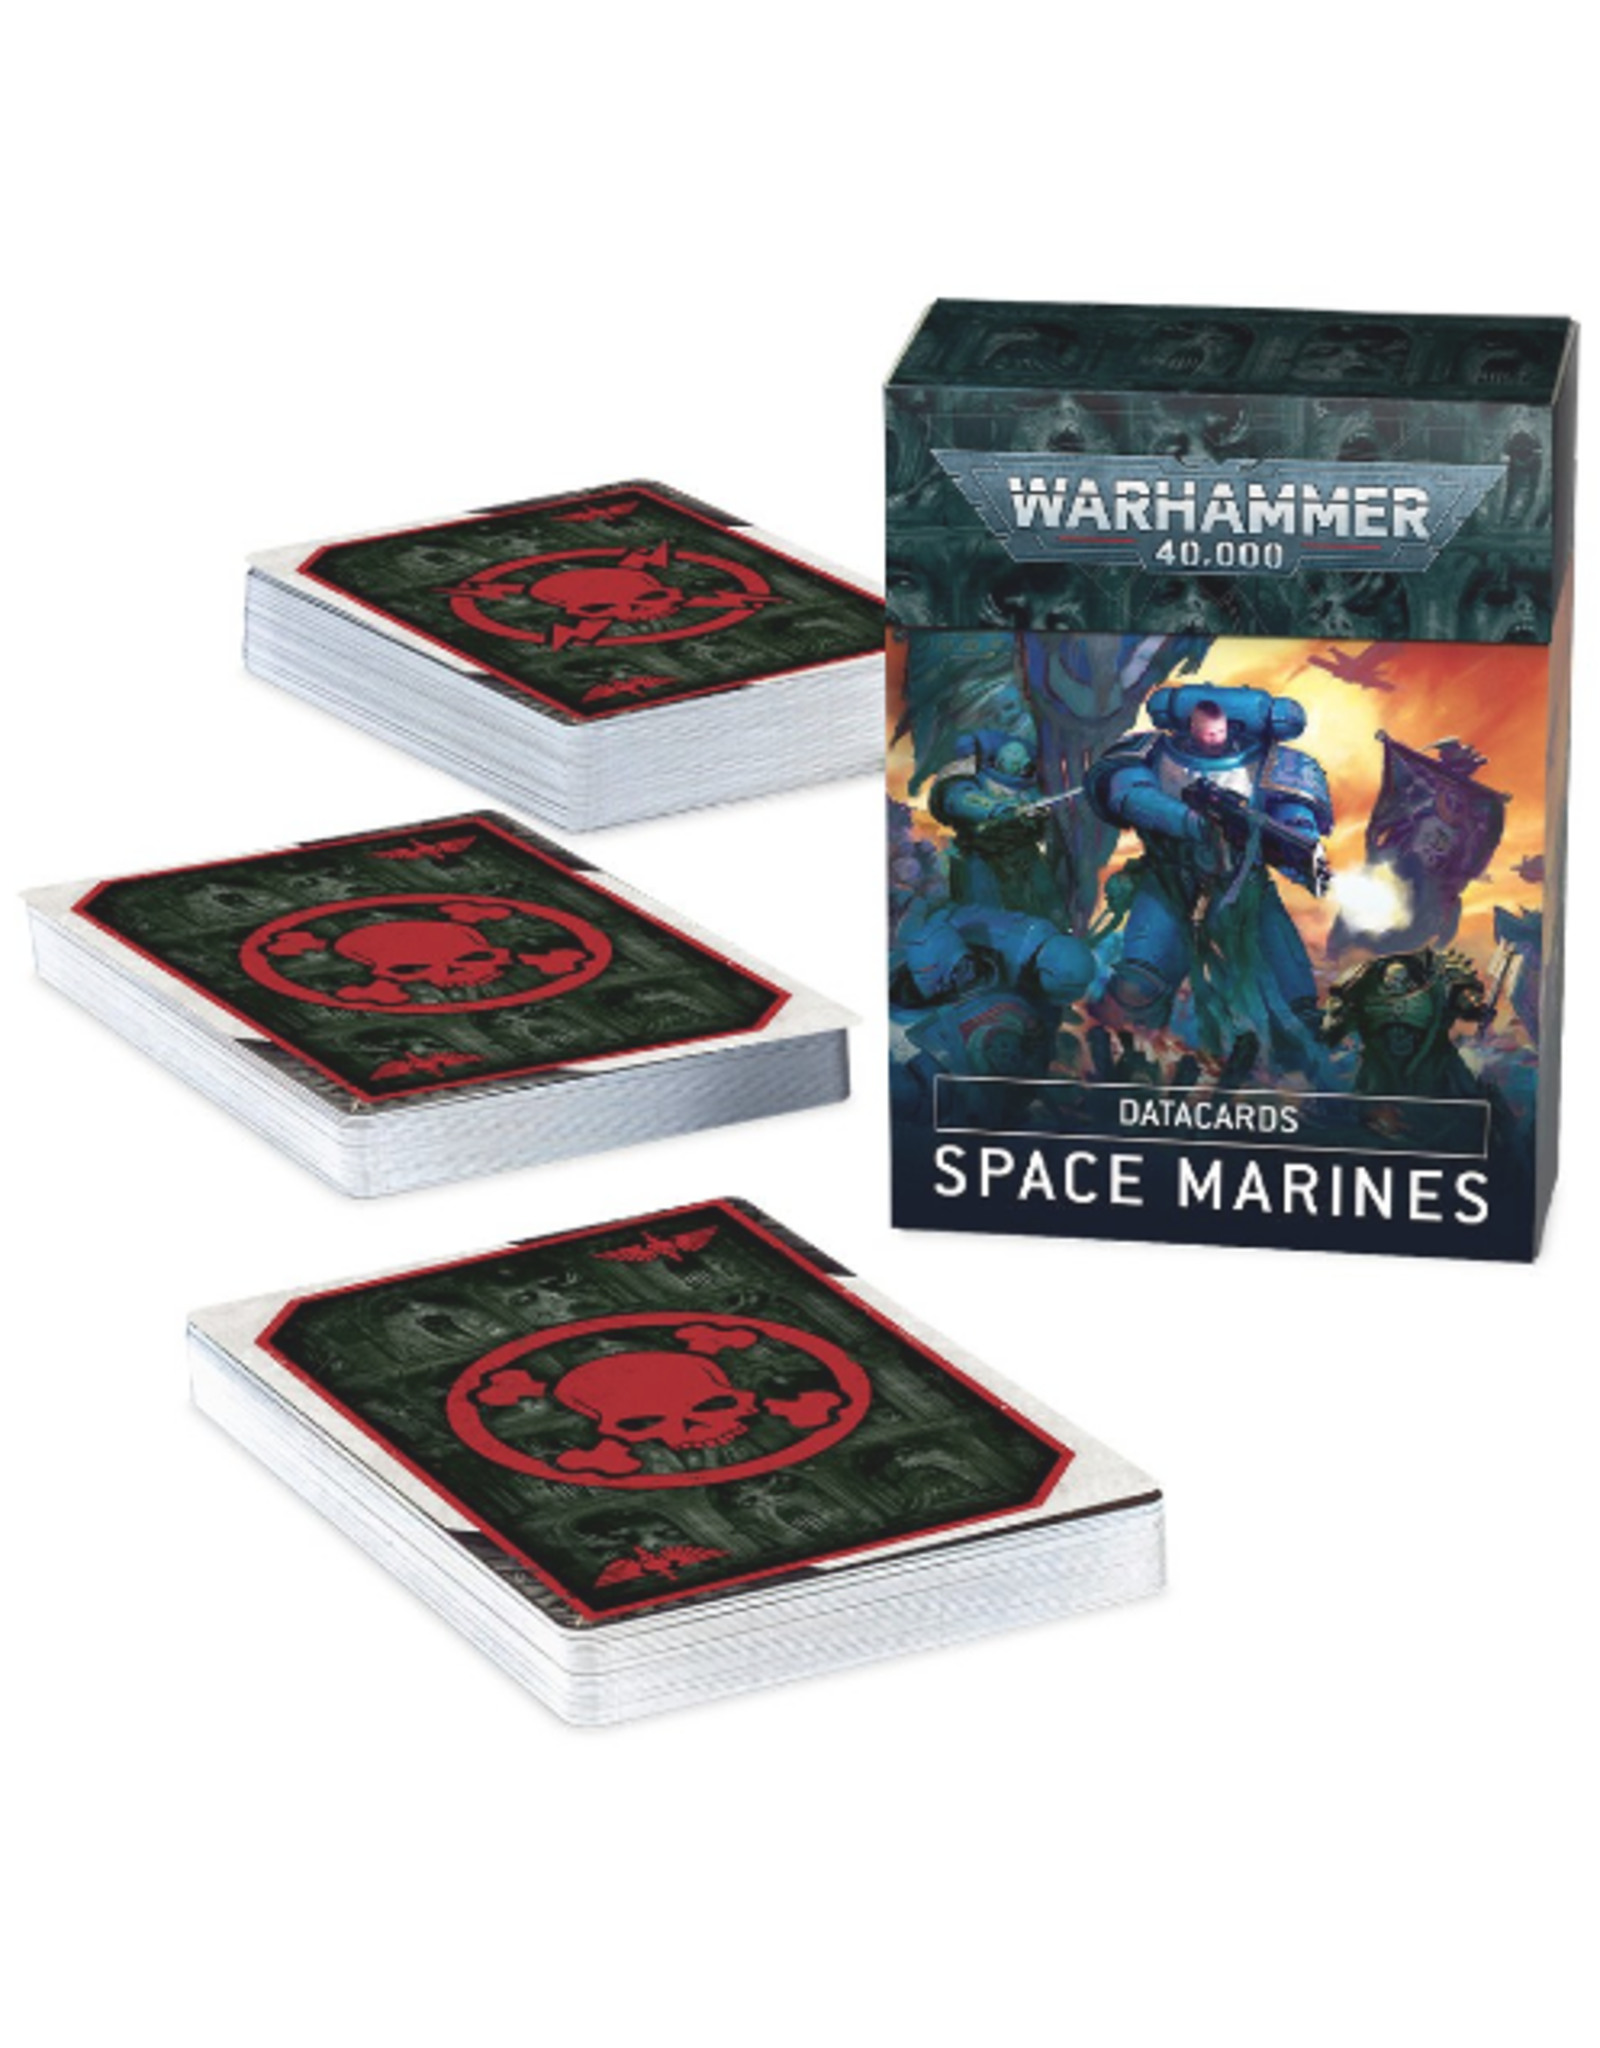 Space Marines 9th Data Cards (40K)